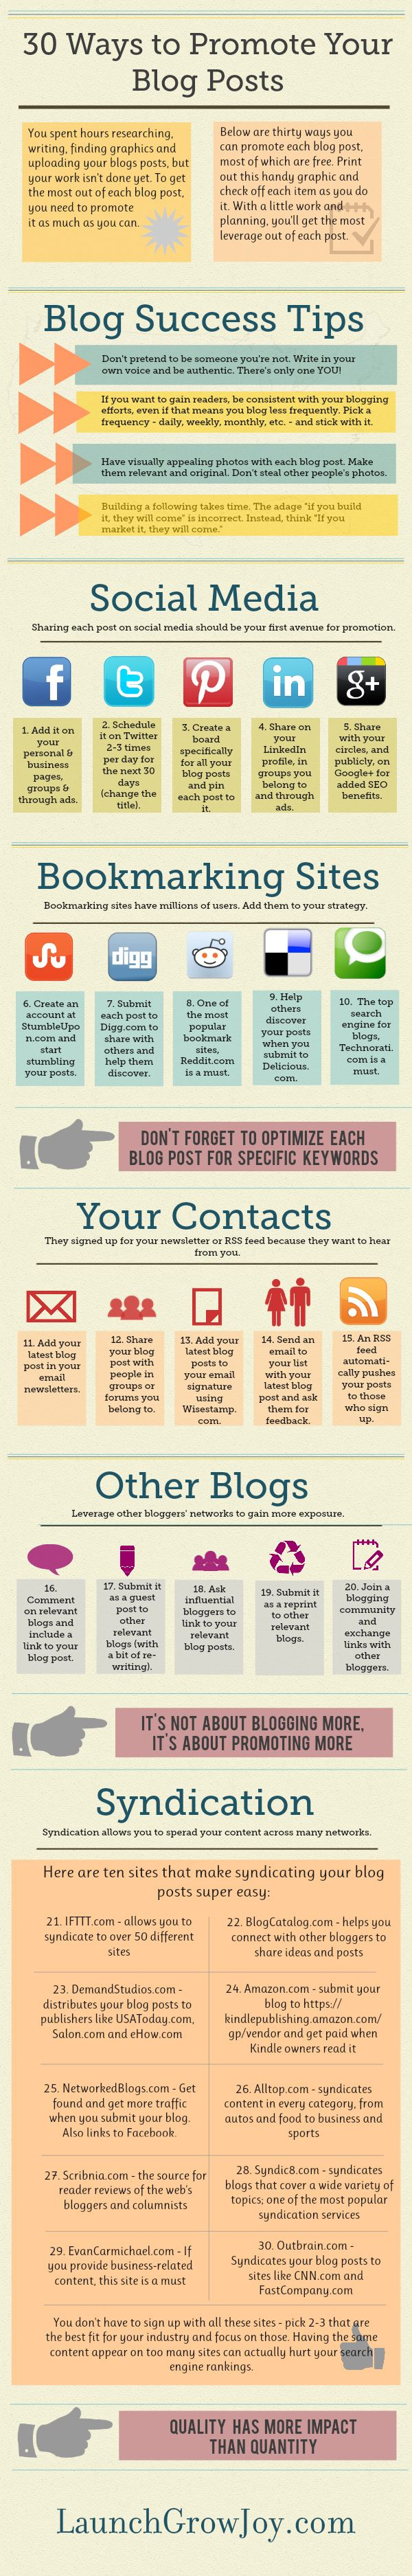 30 ways to promote your blog posts and articles [infographic]